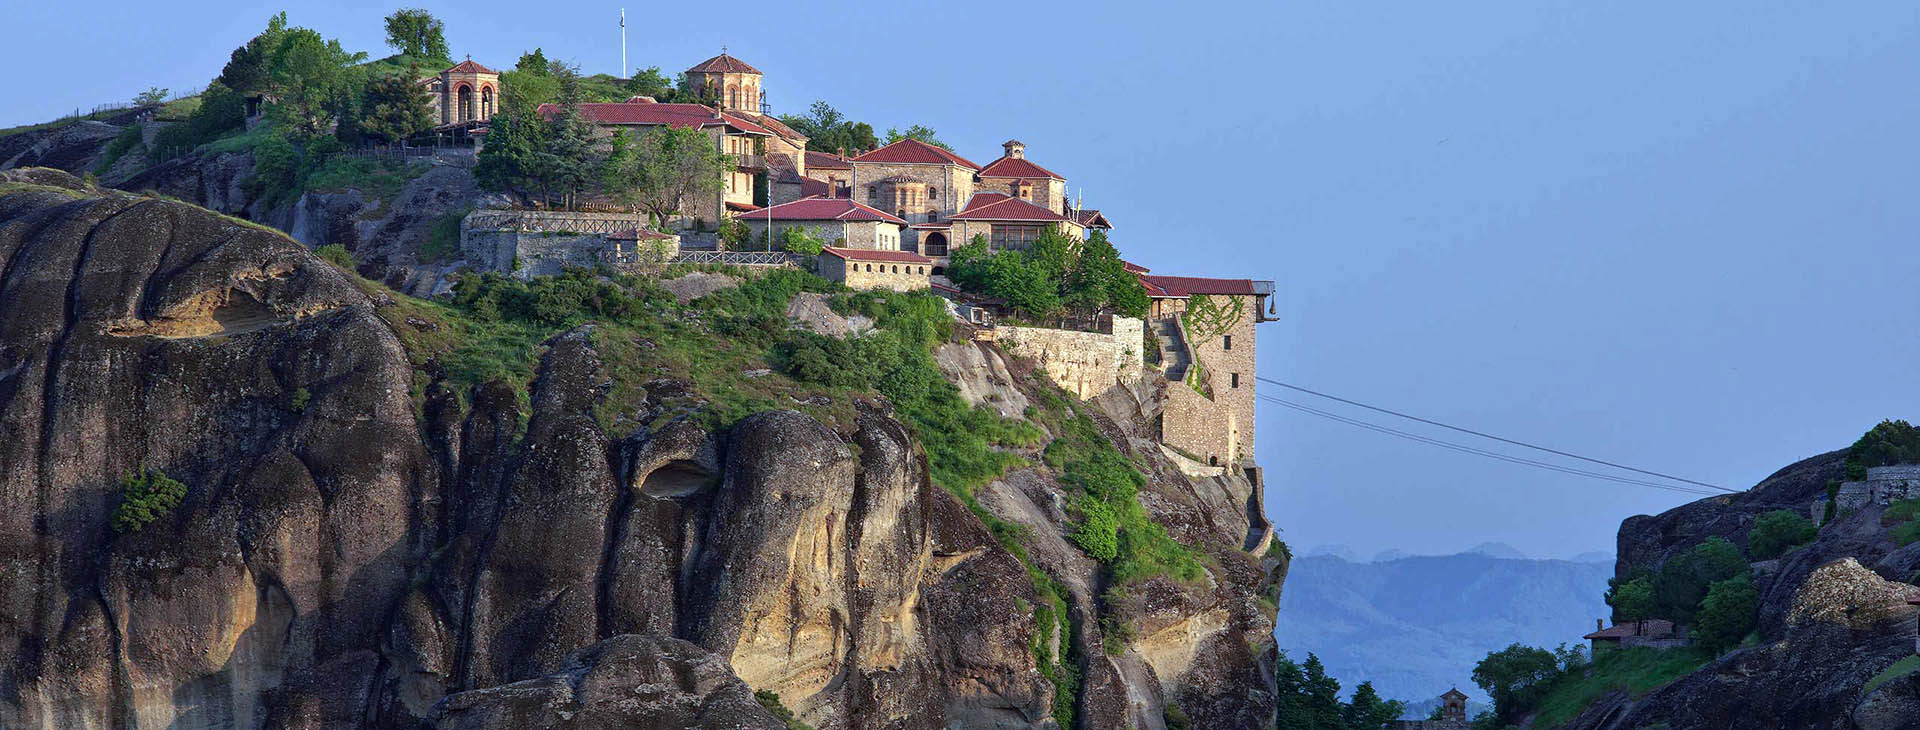 The Holy Monastery of Great Meteoron, Trikala